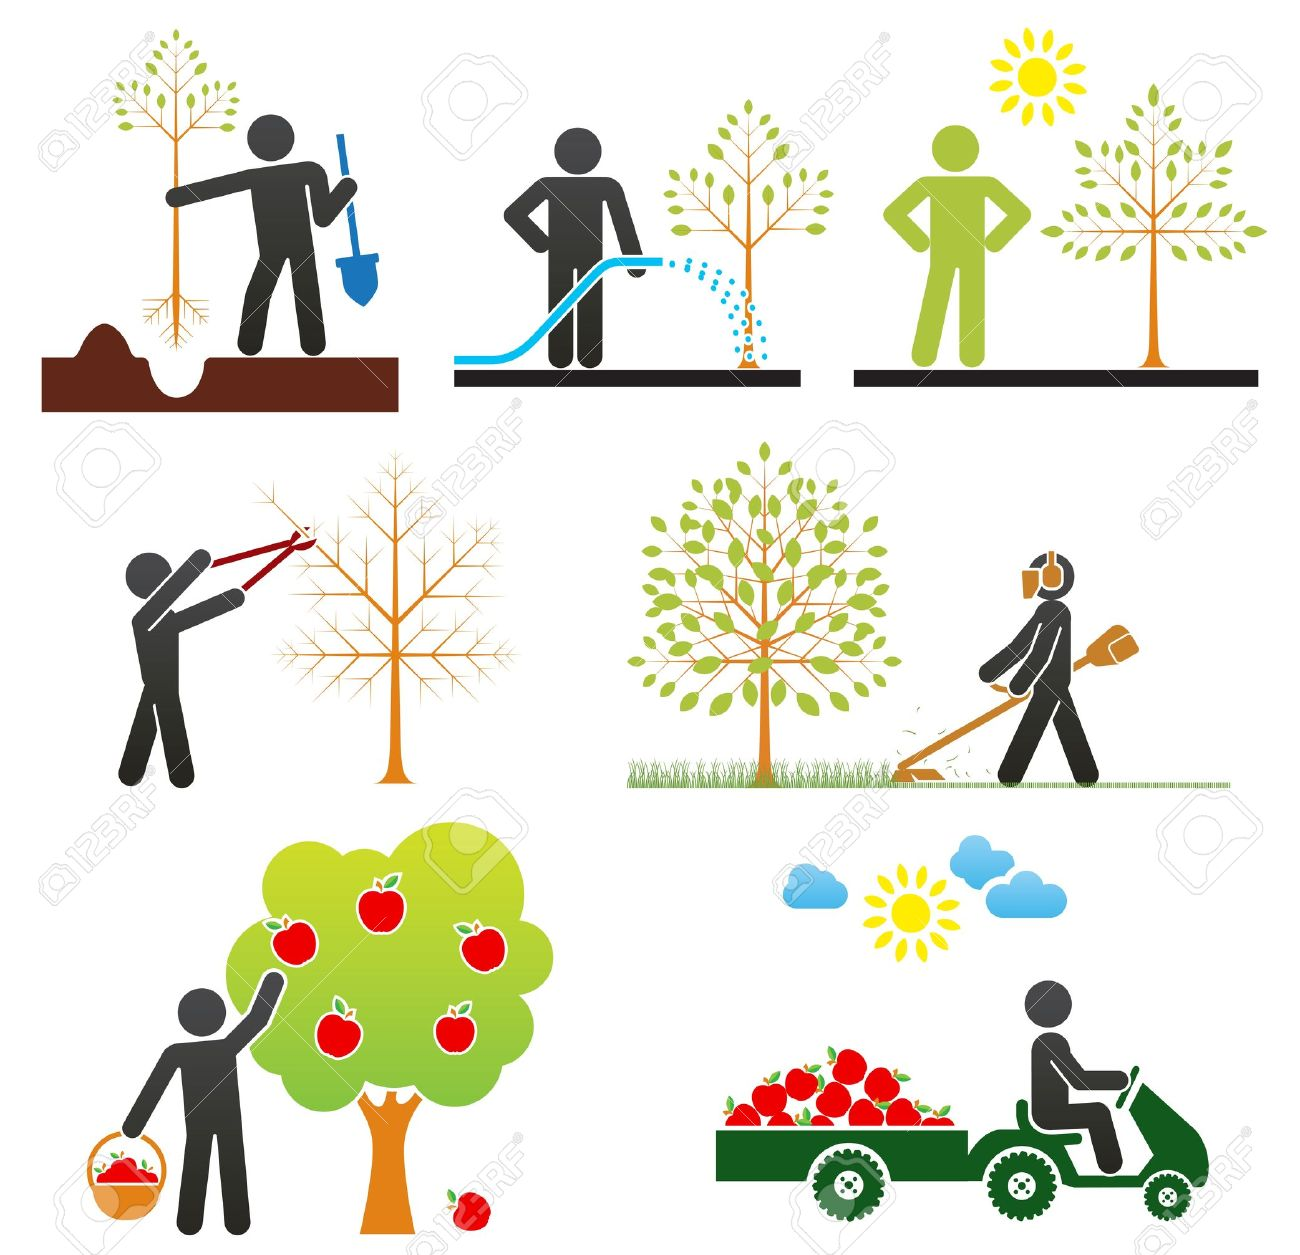 Pictograms representing people taking care of fruit tree - 13718569